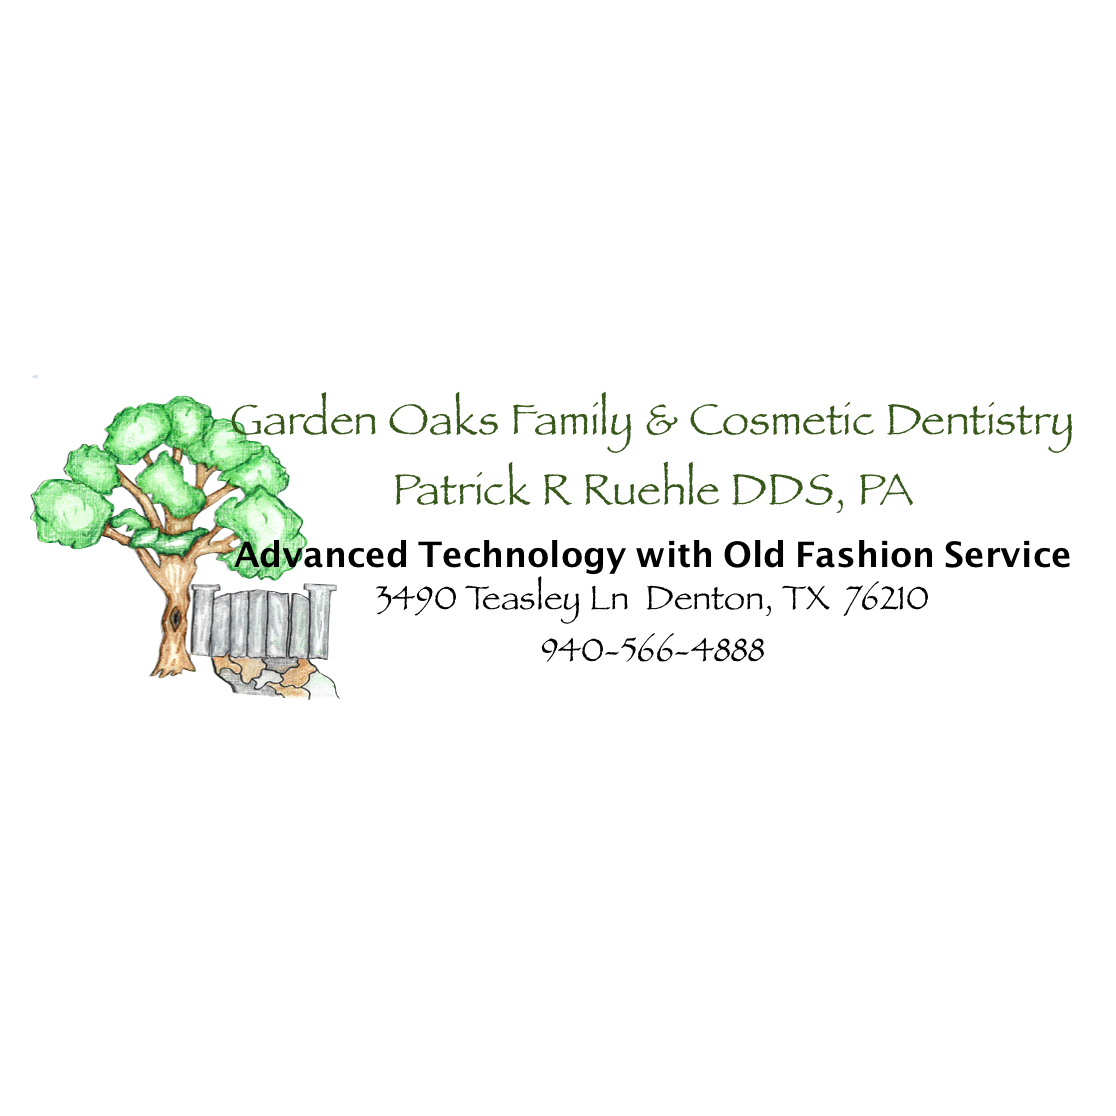 Garden Oaks Family & Cosmetic Dentistry -Patrick R Ruehle DDS, PA image 5